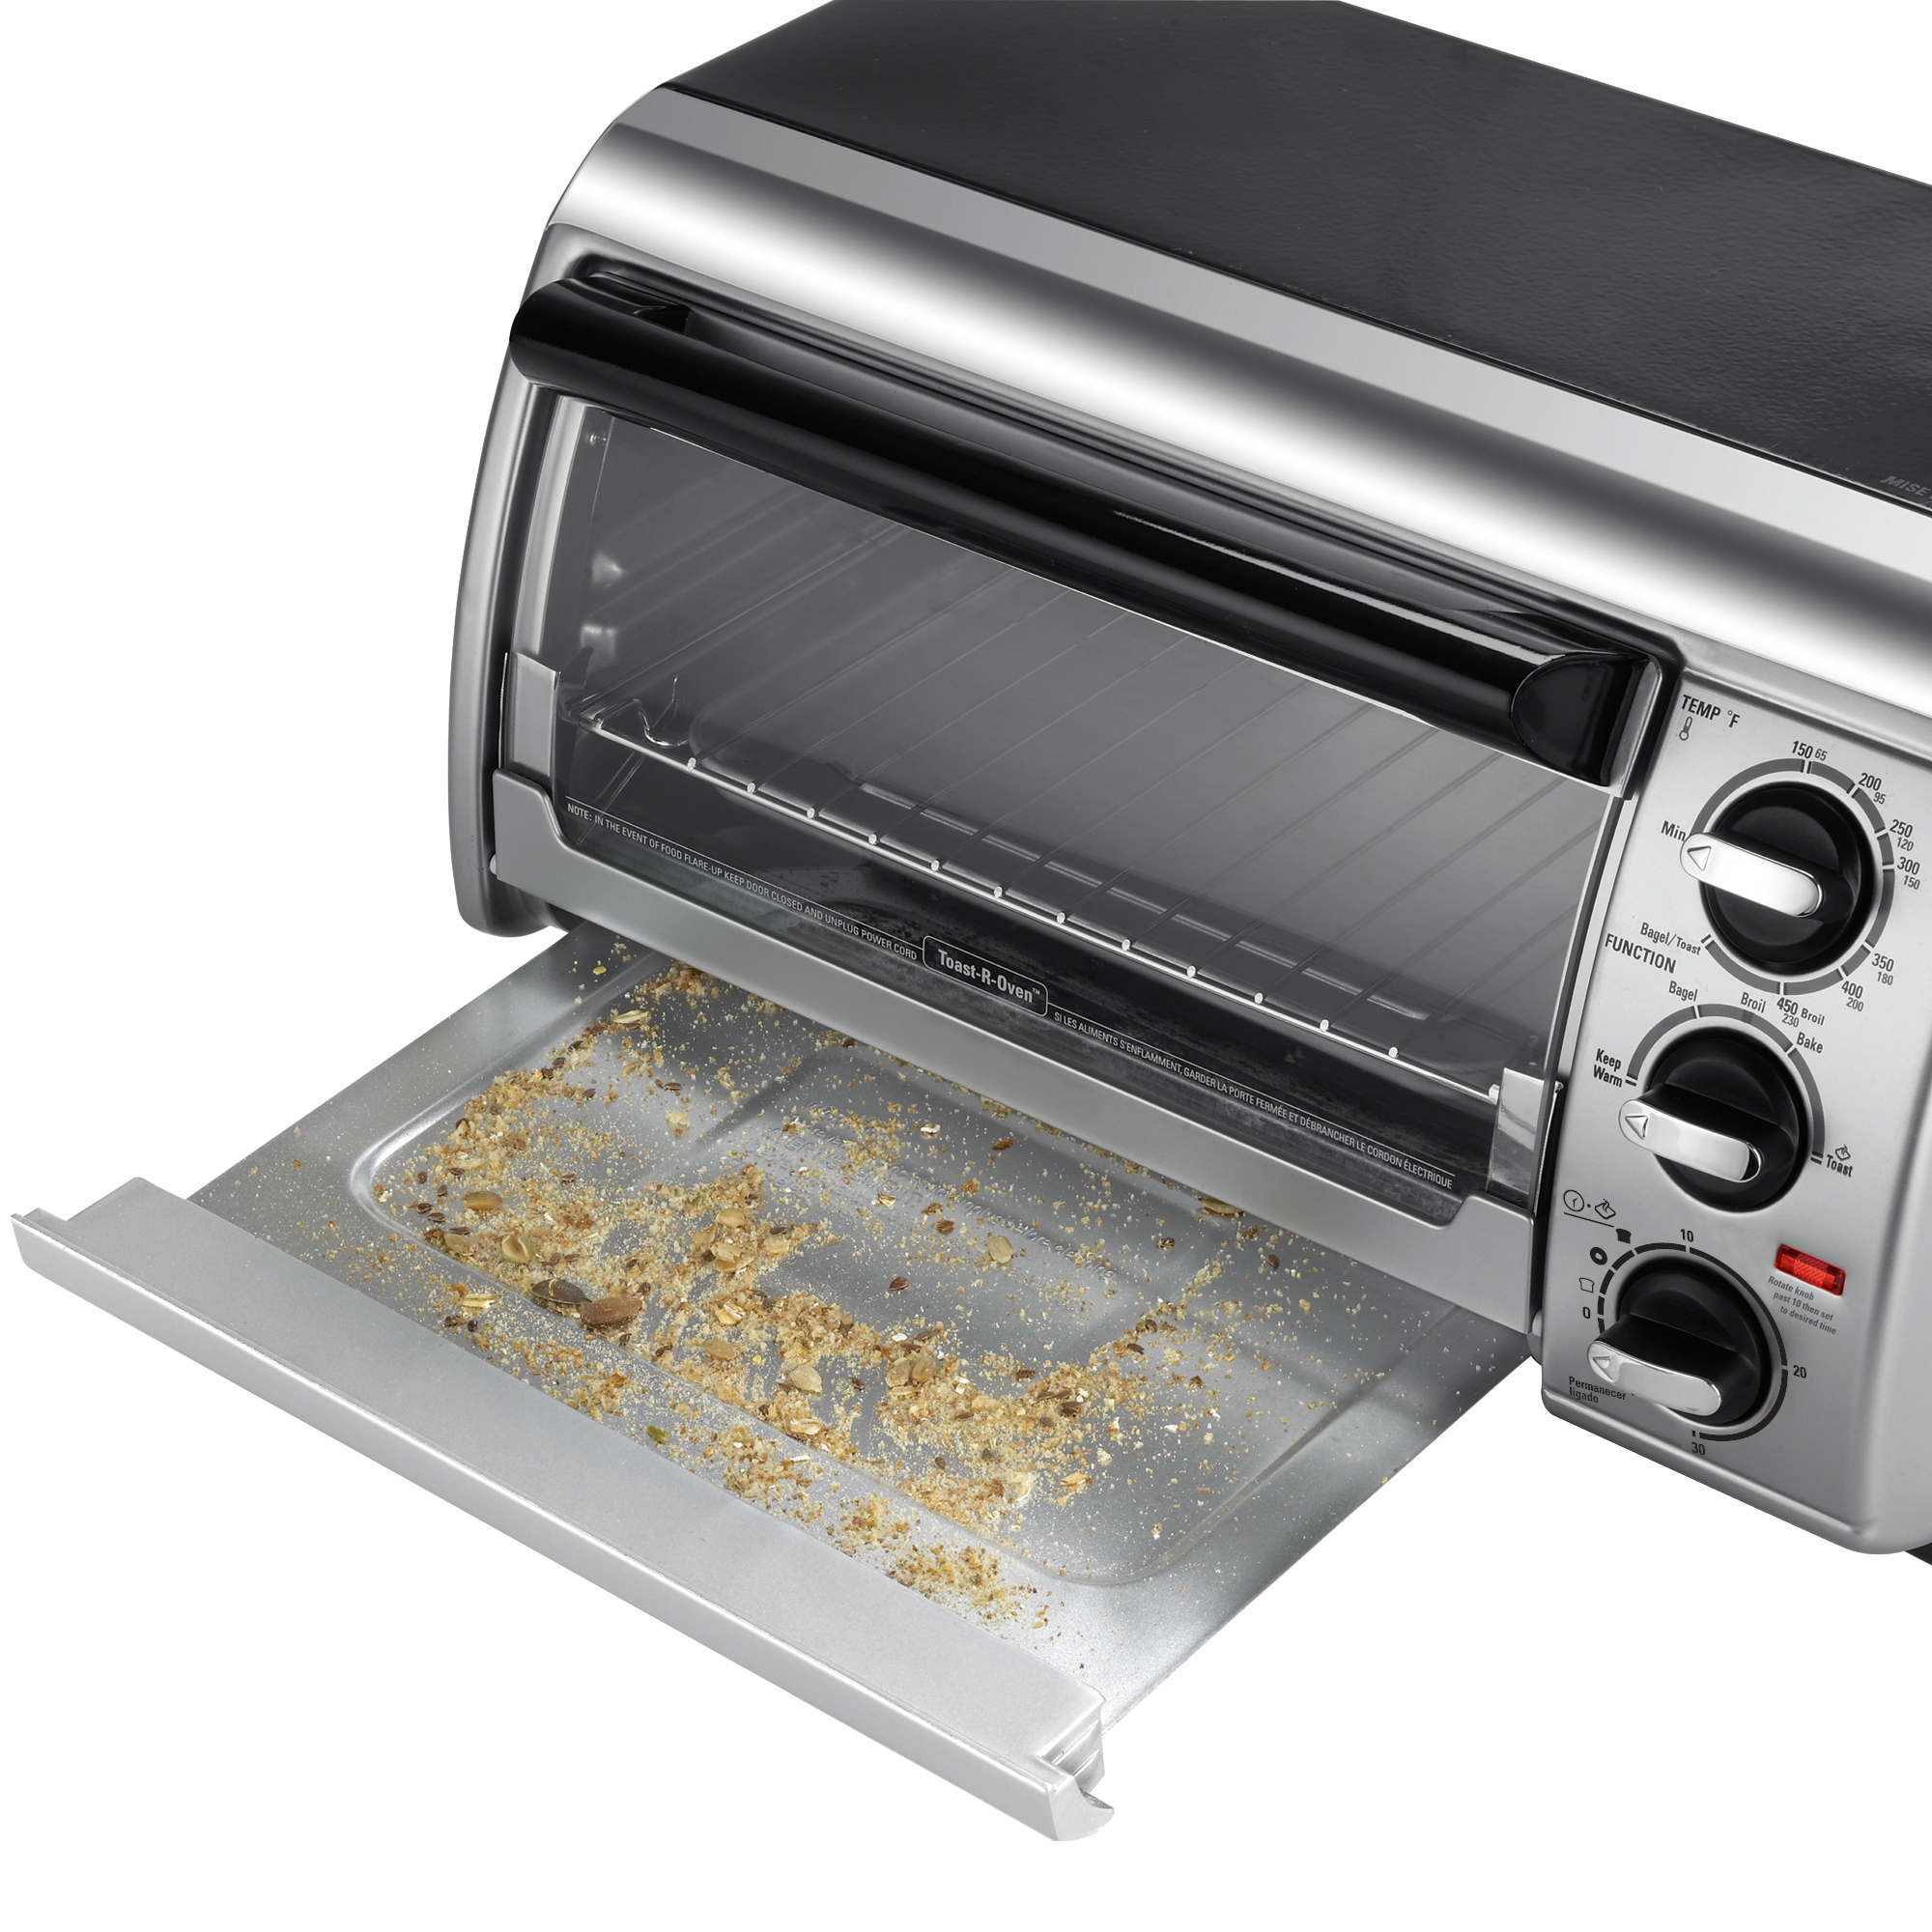 Buy a Black and Decker Toaster Oven | Counter Top Toaster ...